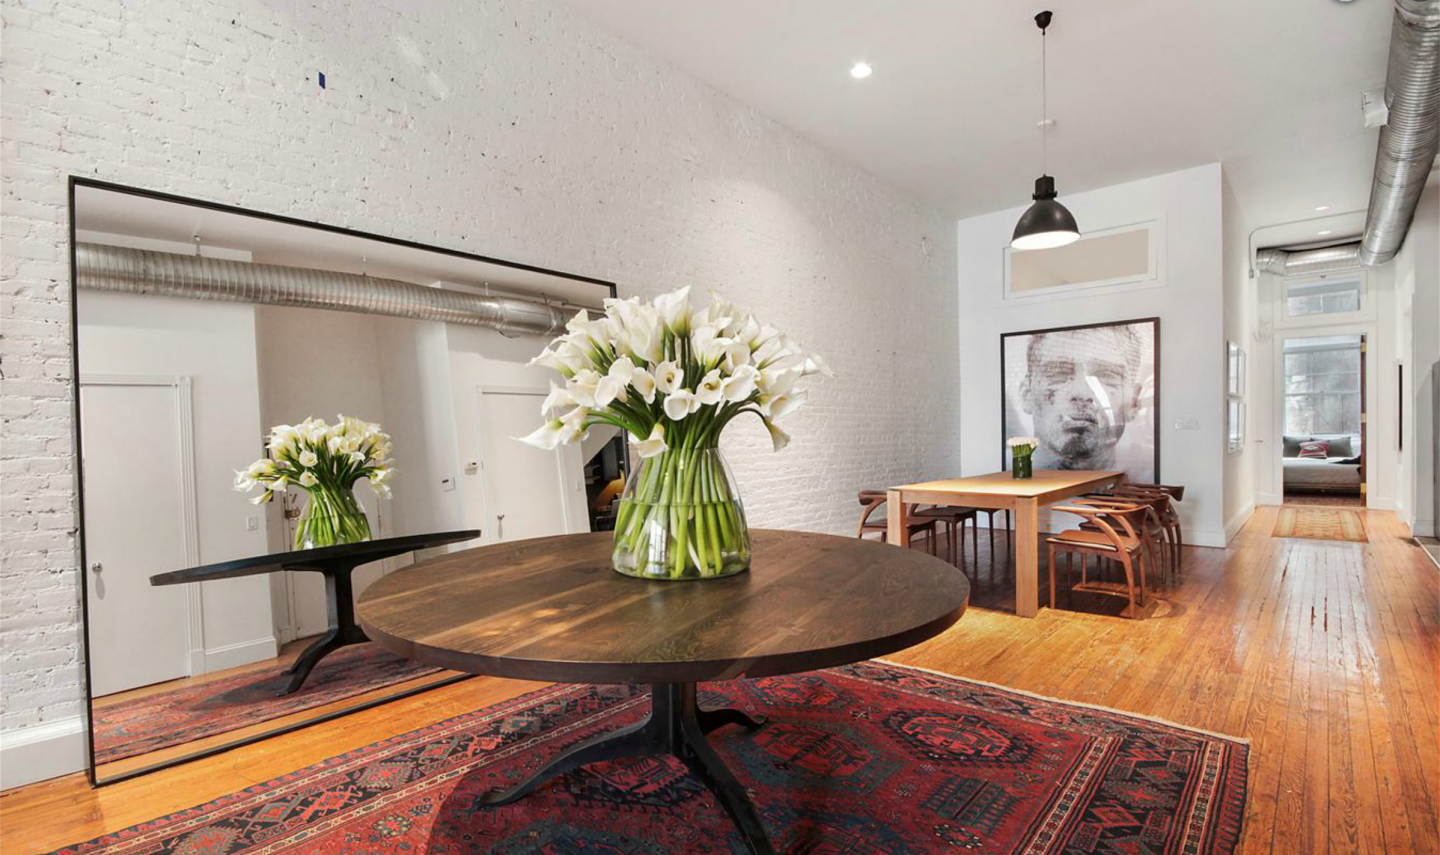 Jonah Hill's loft has been listed twice and once asked for $12,000 to $14,000 per month.